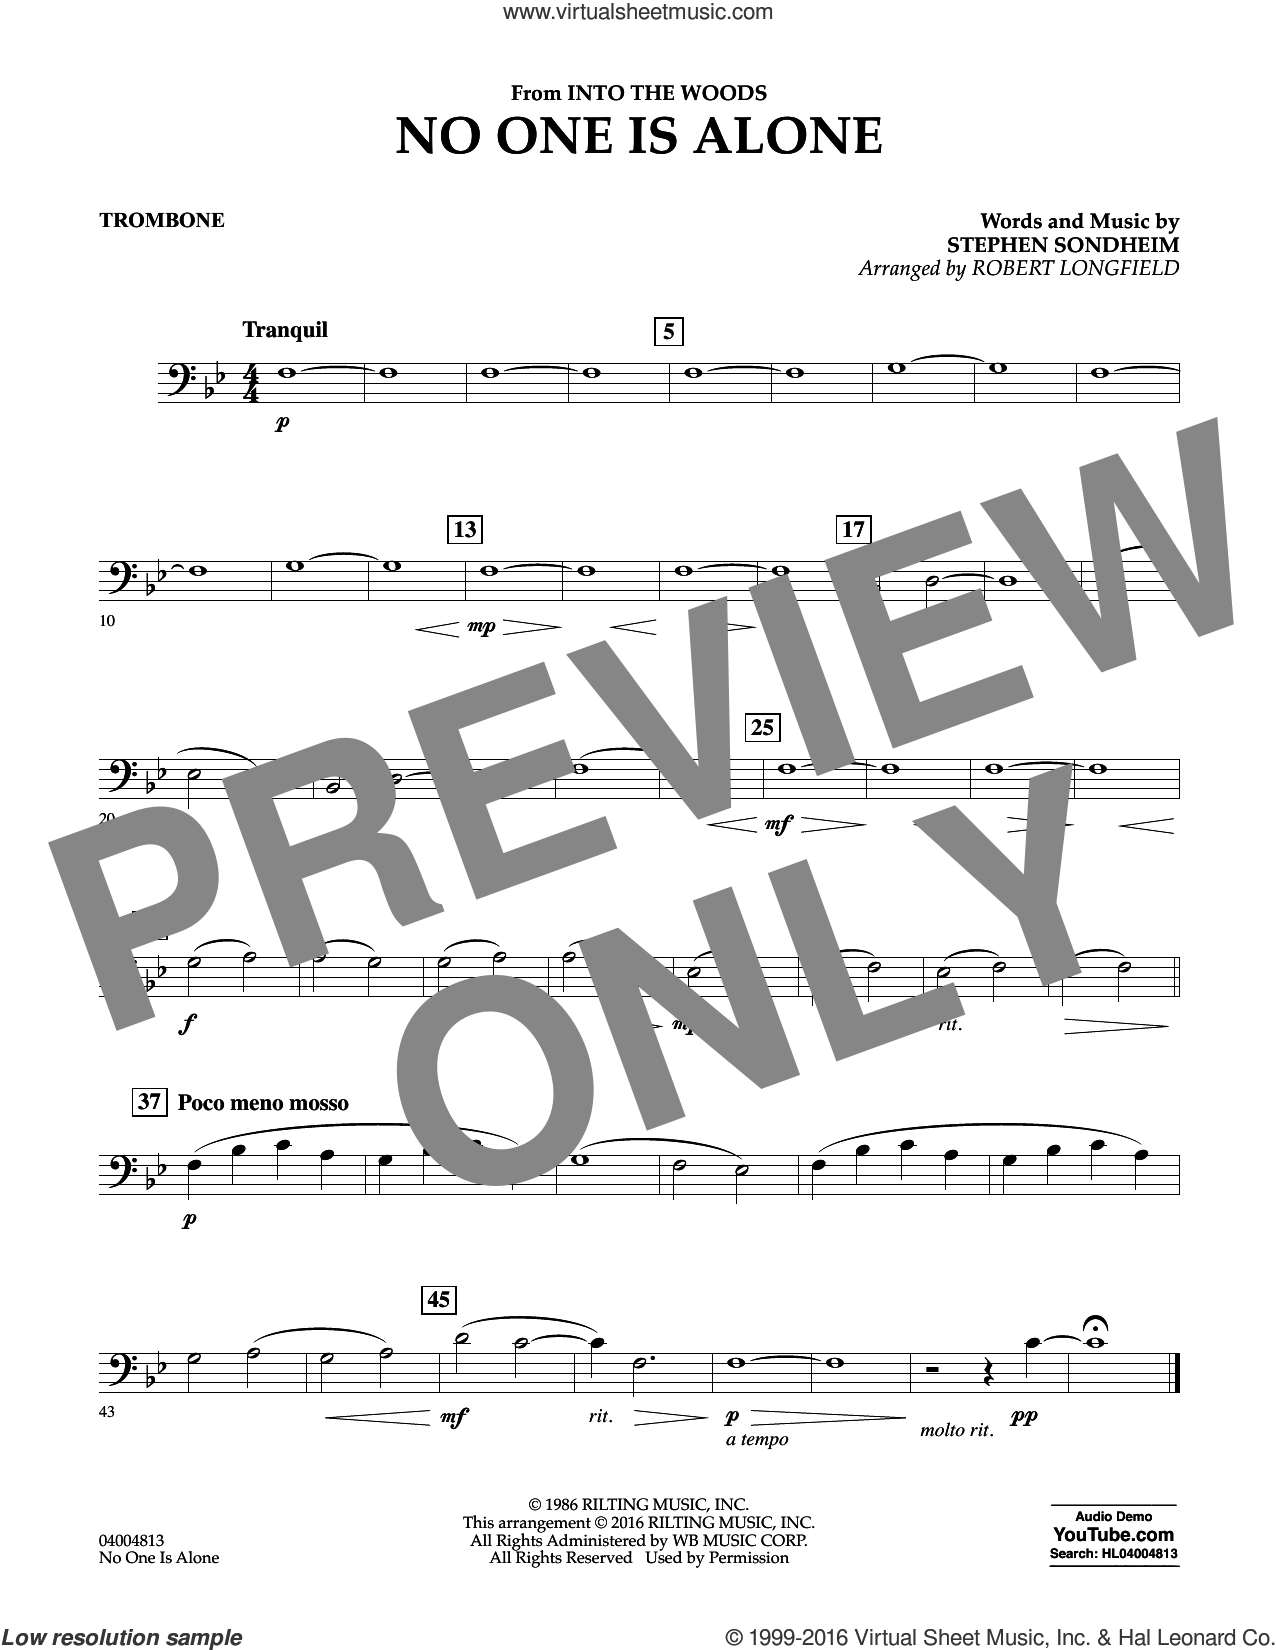 No One Is Alone sheet music for concert band (trombone) by Stephen Sondheim and Robert Longfield, intermediate skill level